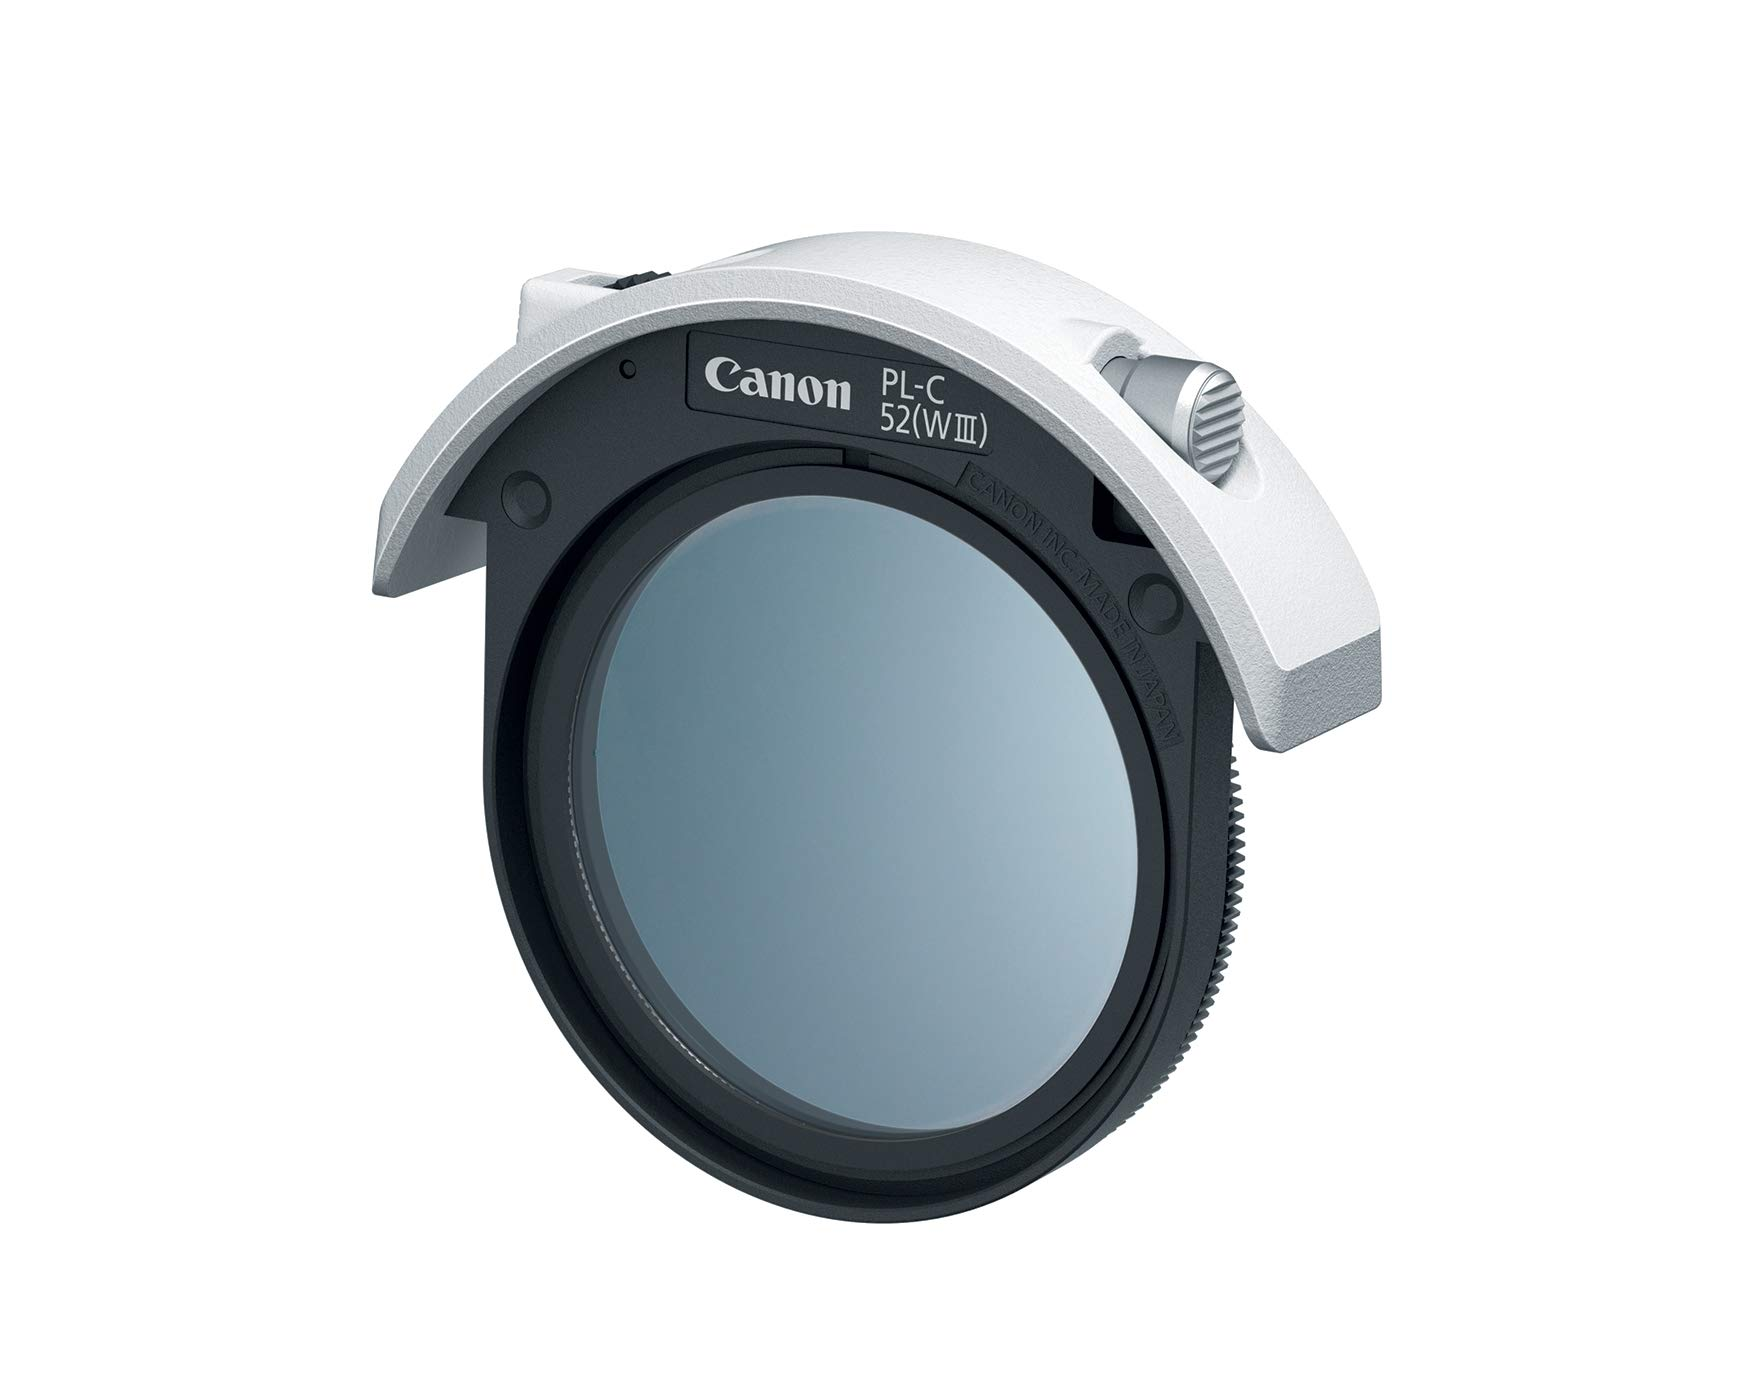 Canon Drop-In Circular Polarizing Filter PL-C 52 (WIII) by Canon